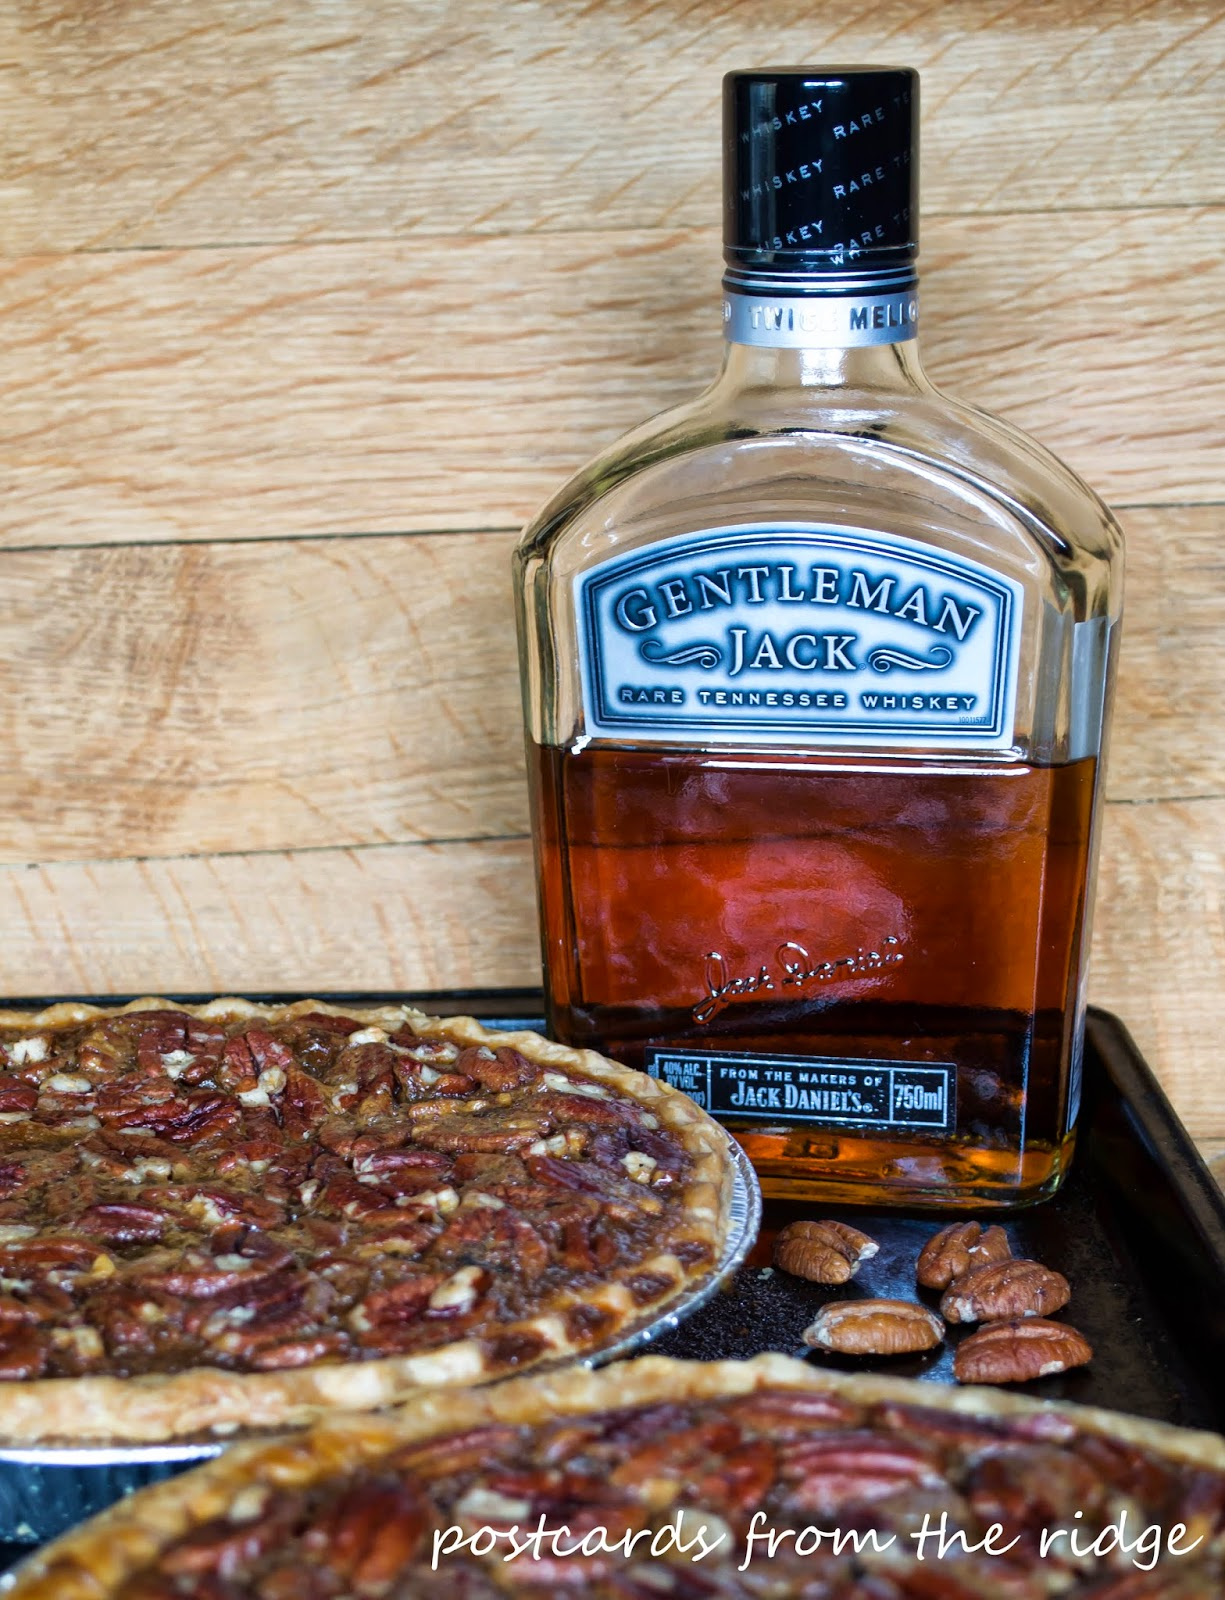 homemade pecan pies with Gentleman Jack Daniels whiskey